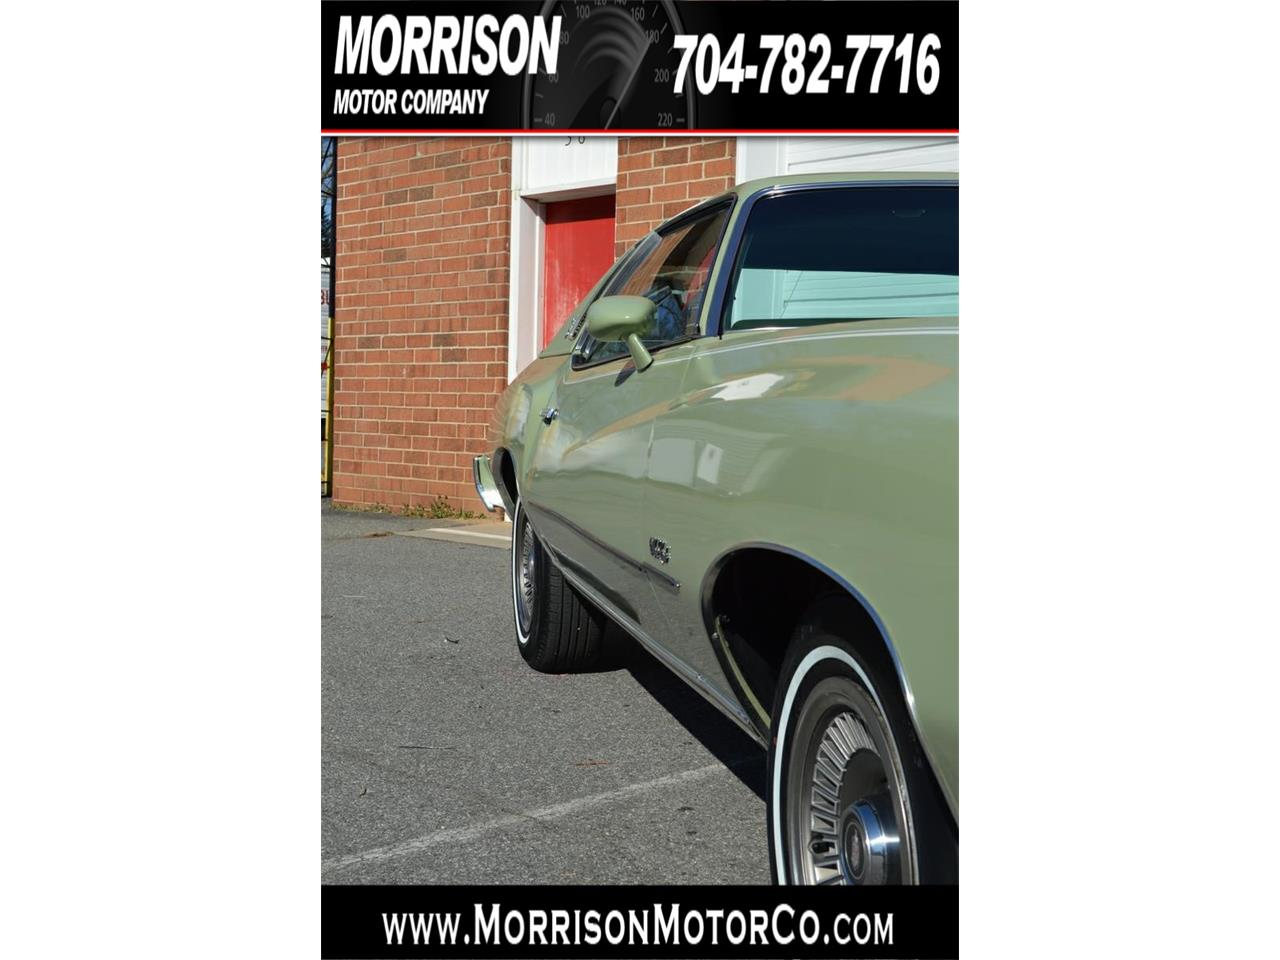 Large Picture of 1974 Chevrolet Monte Carlo located in North Carolina - $19,900.00 Offered by Morrison Motor Company - PEZN